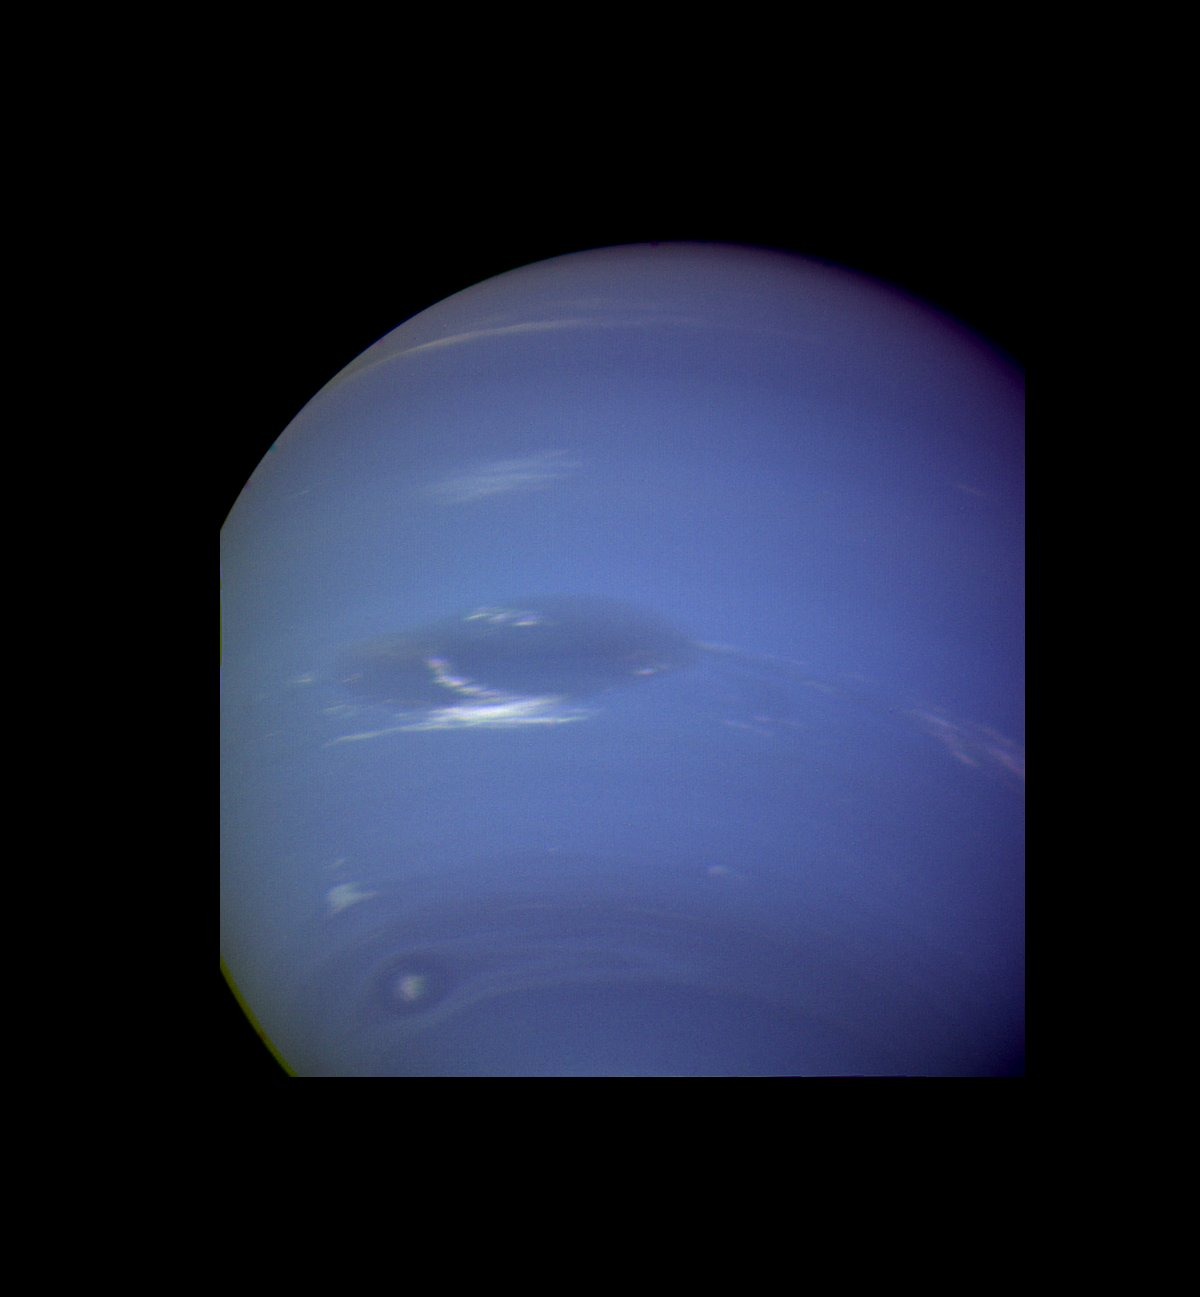 Neptune - Great Dark Spot and Scooter